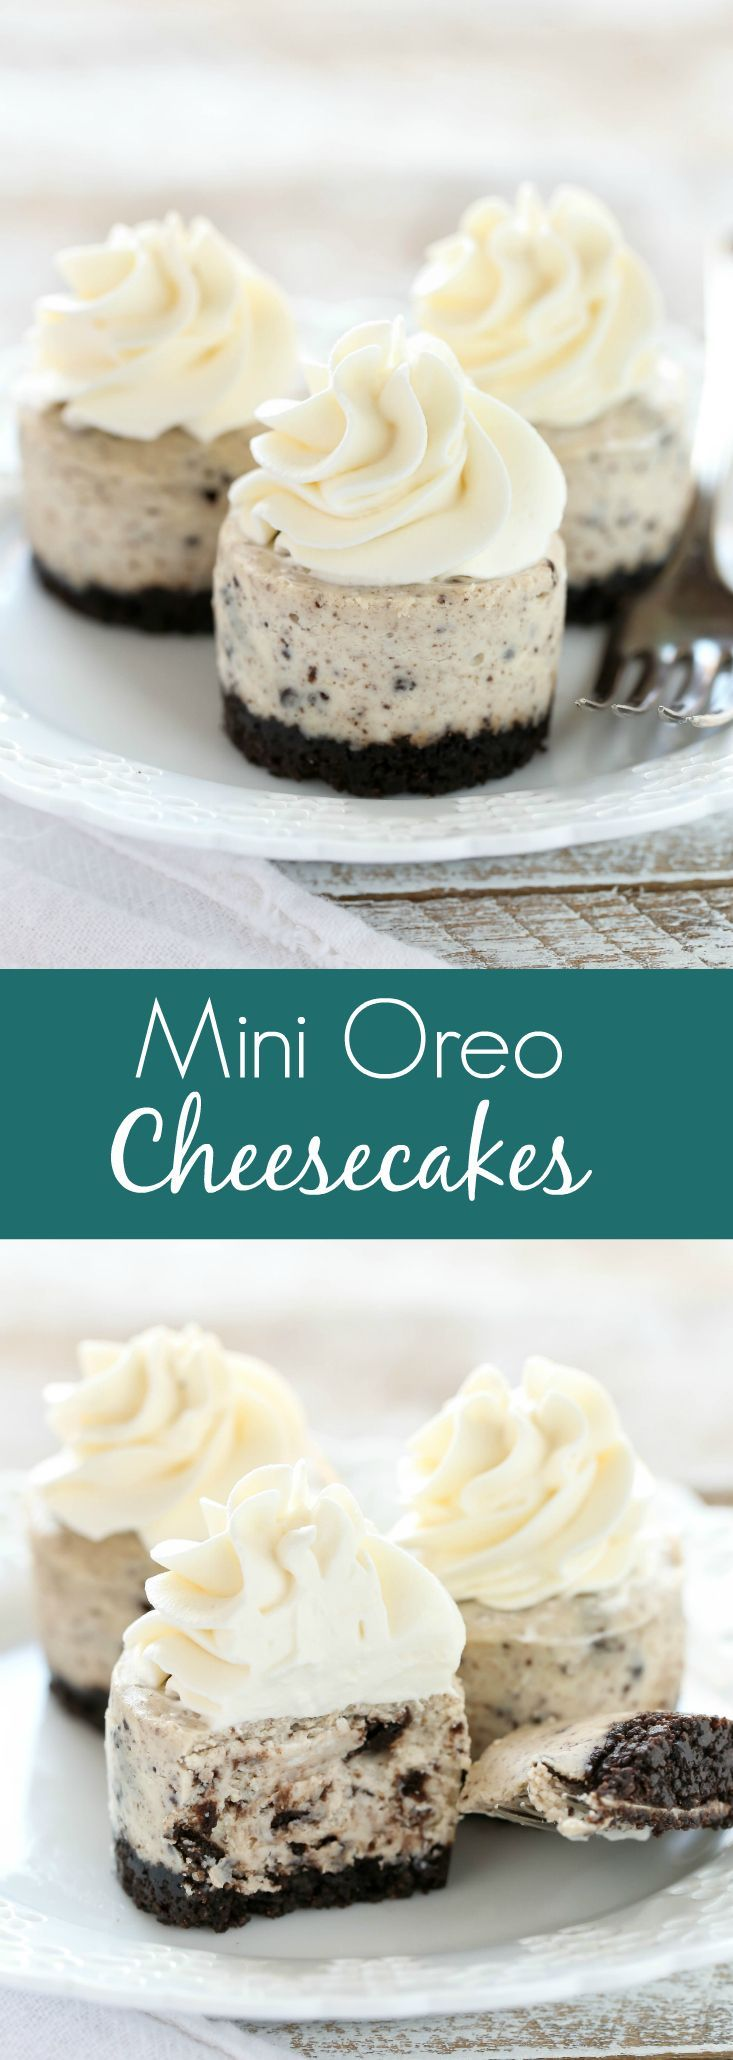 An easy two ingredient Oreo crust topped with a smooth and creamy Oreo cheesecake filling. These Mini Oreo Cheesecakes make a perfect dessert for any time of year! #cheesecakes